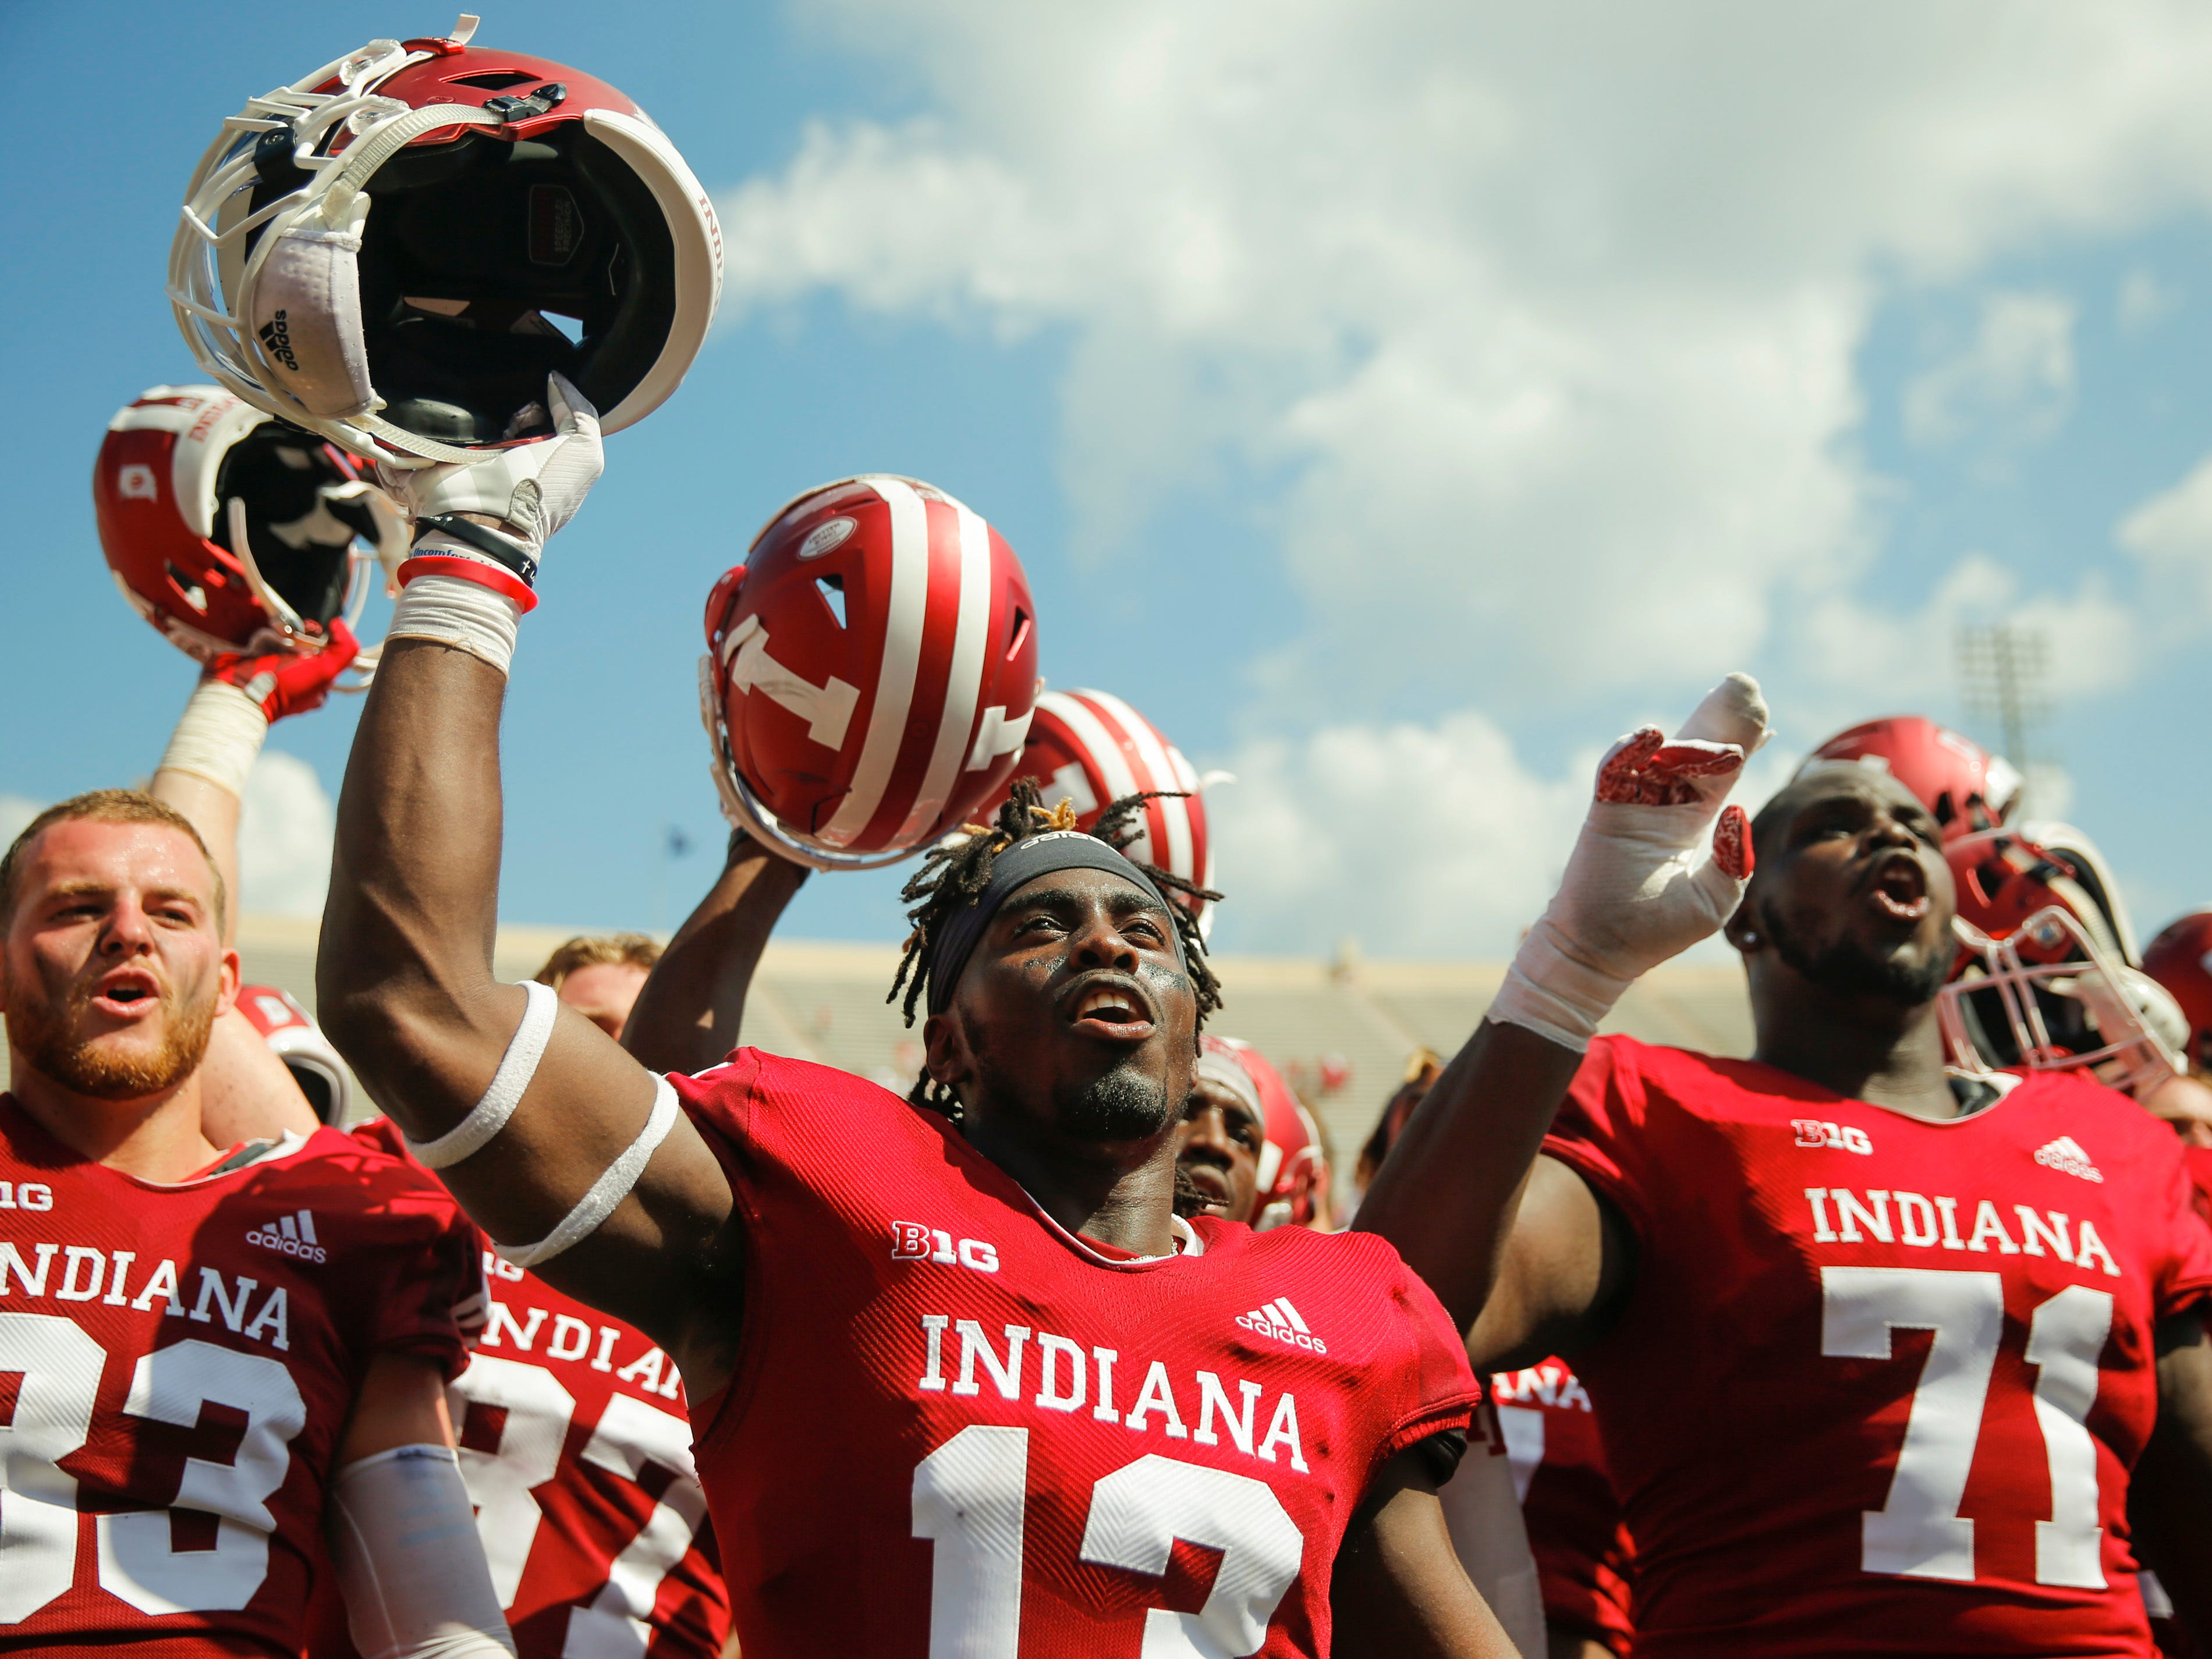 7. Indiana (3-0) – The Hoosiers rolled over Ball State to enter Big Ten play unbeaten, only the second time they've been 3-0 in the last decade. Stevie Scott was effective again, running for 114 yards and two touchdowns as Indiana begins the difficult task of competing in the East. Last week: 8.